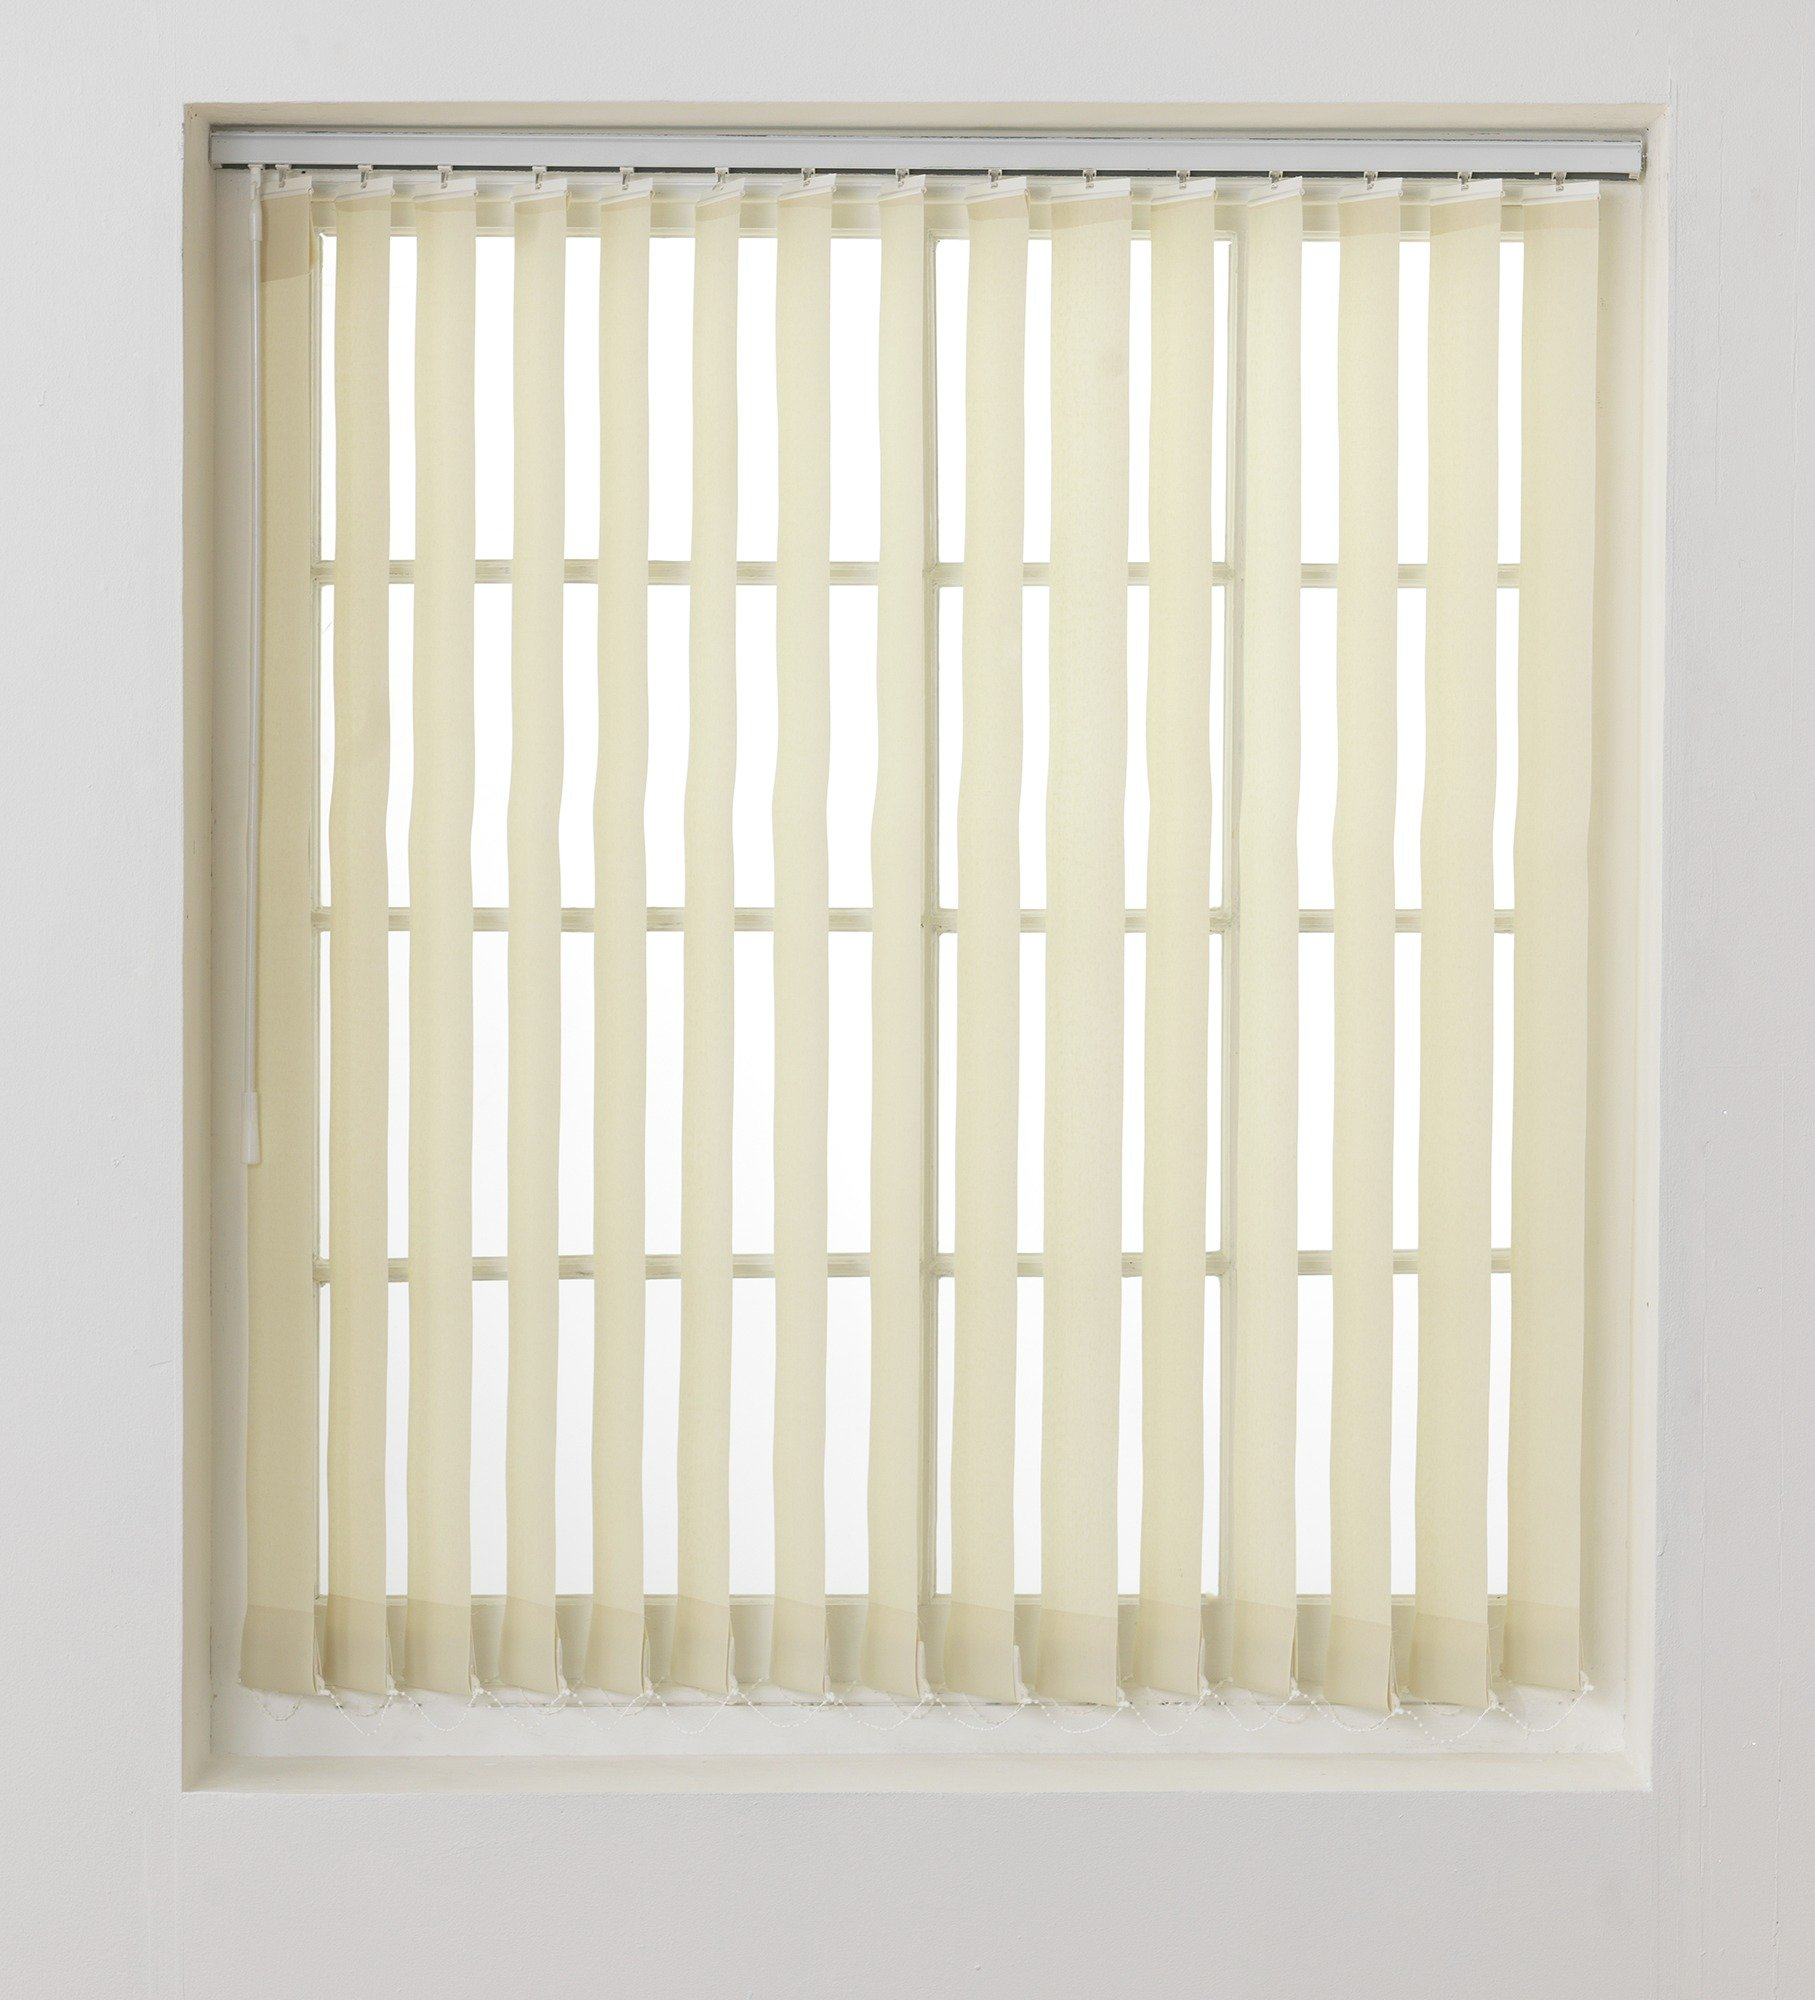 Vertical blind slats search results search results Home decorators vertical blinds